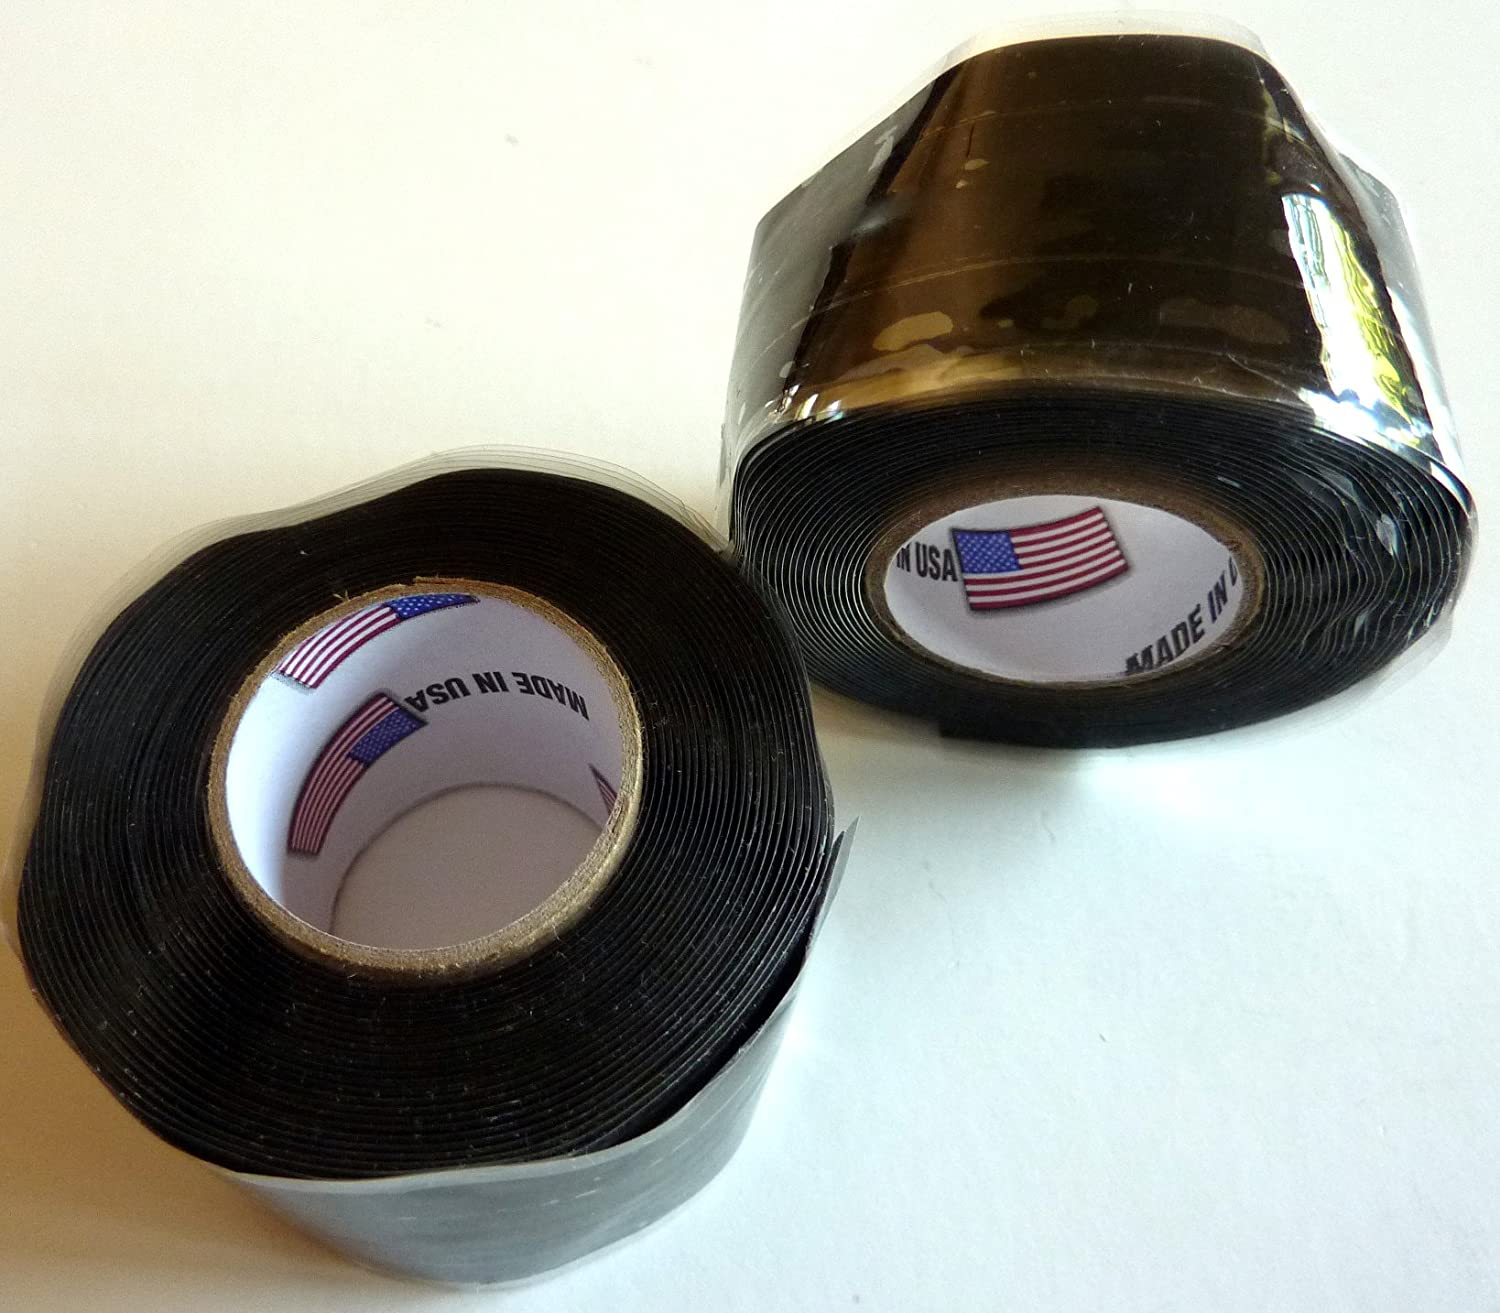 2X Philmore Self-Fusing Black Silicone Rubber Emergency Repair Tape Seals Insulates Waterproofs, 1 x 10ft